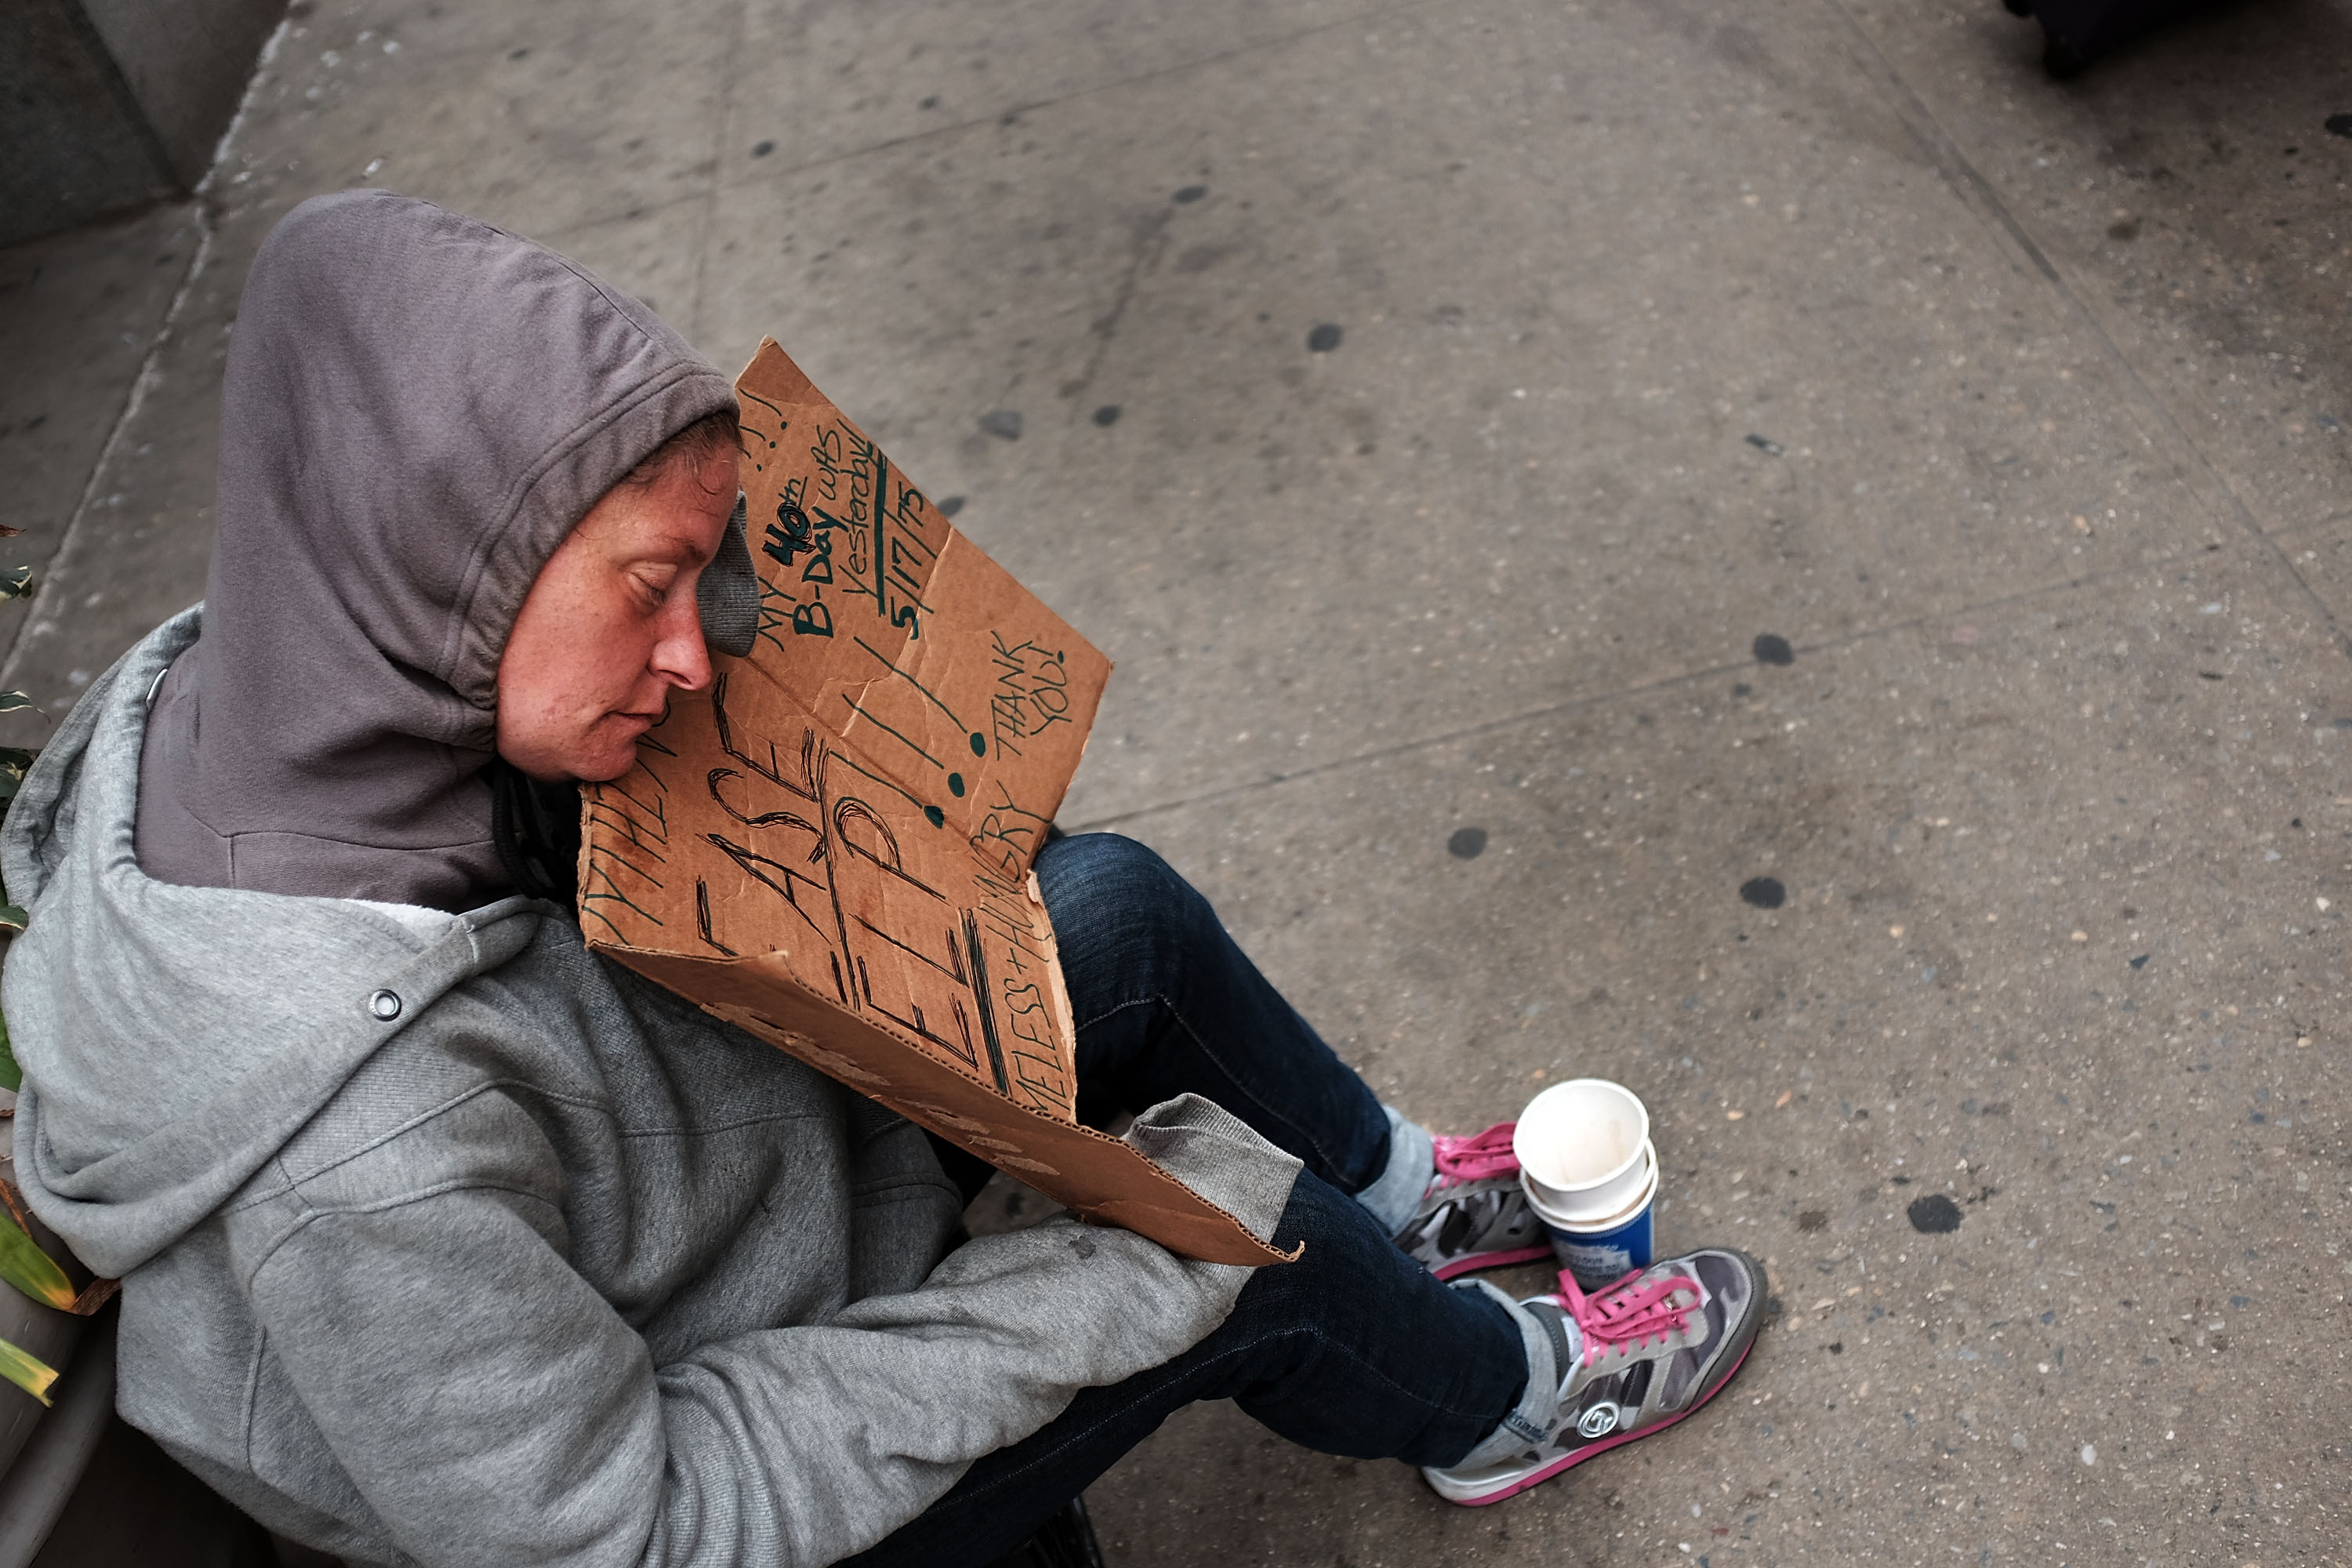 A homeless woman in Manhattan